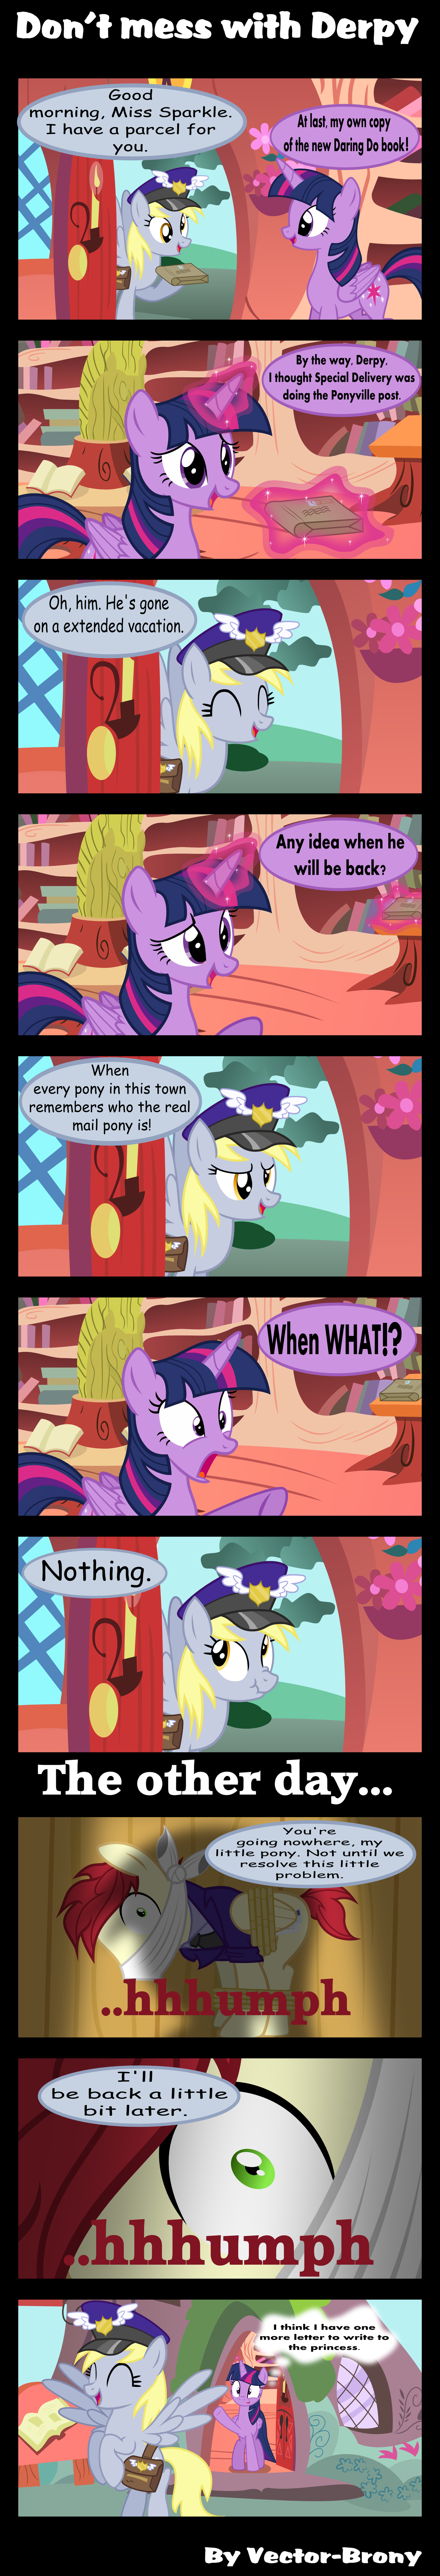 Don't mess with Derpy by Vector-Brony